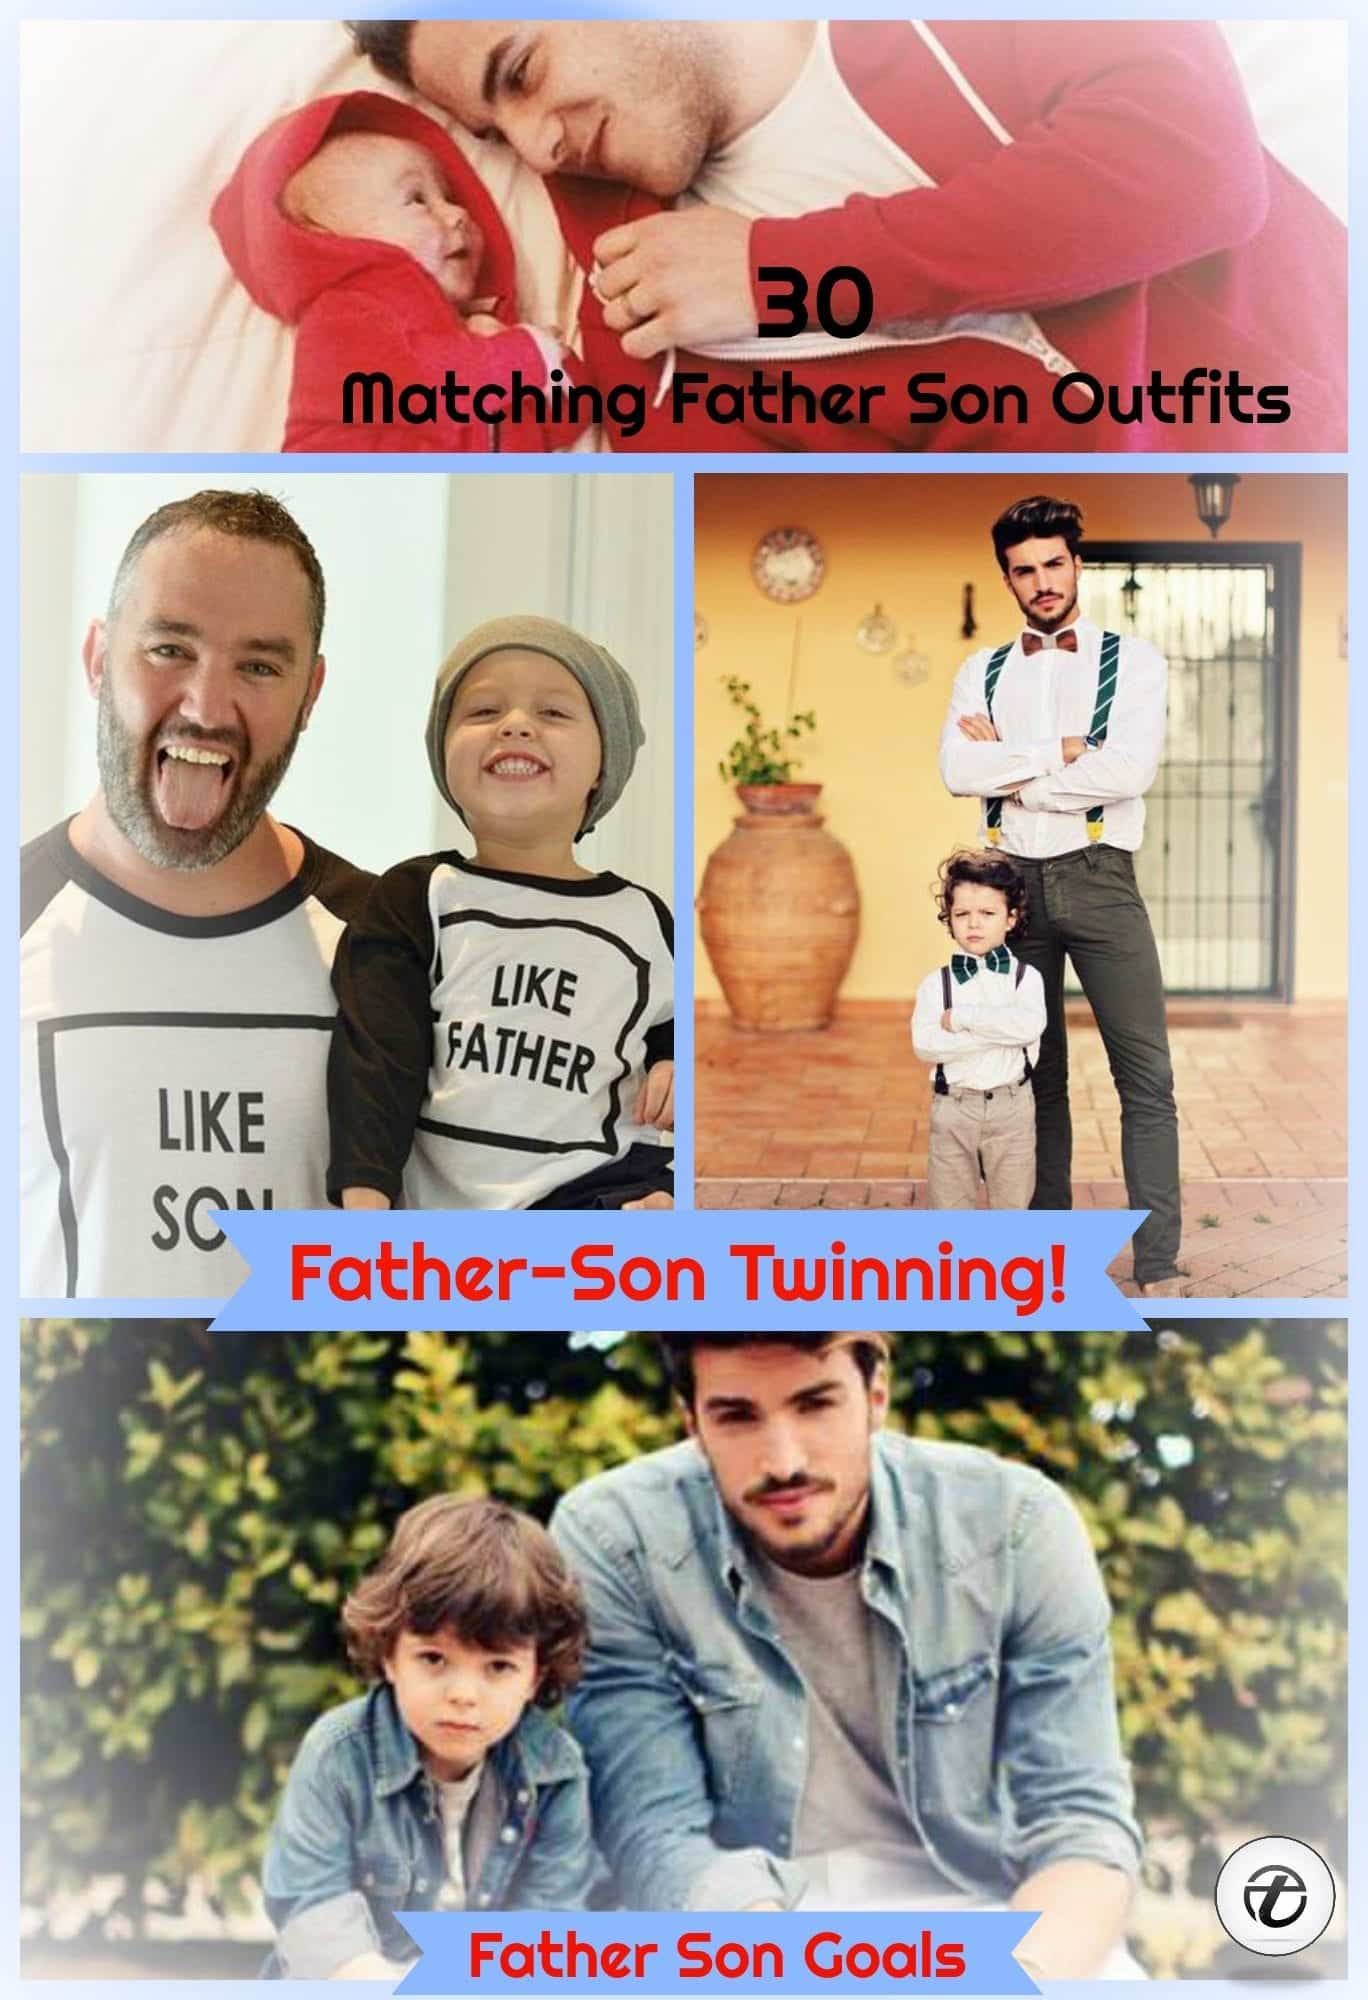 father-son-matching-outfits Father & Son Twinning-30 Amazing Father Son Matching Outfits